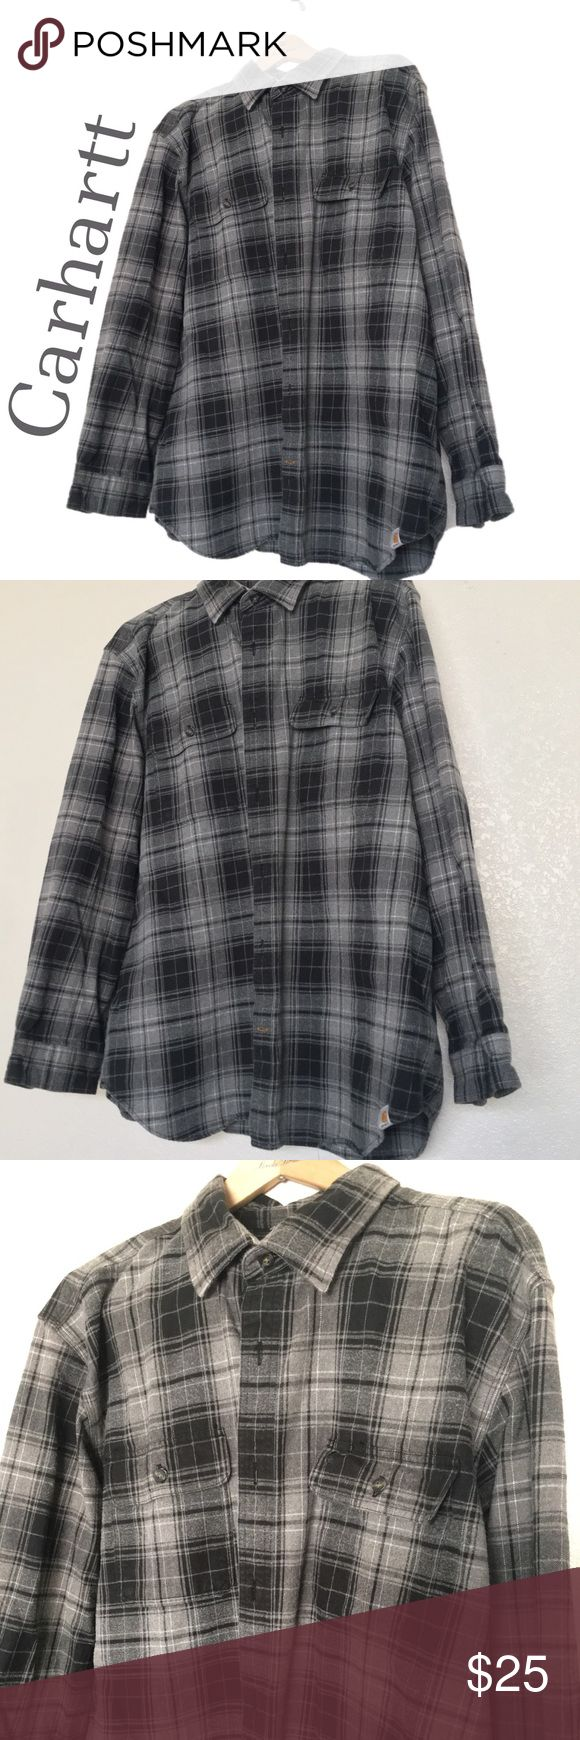 Carhartt heavy duty flannel shirt! Super heavy duty Carhartt flannel, like new, no imperfections! Feel free to make an offer! 😄👍🏼 Carhartt Shirts Casual Button Down Shirts